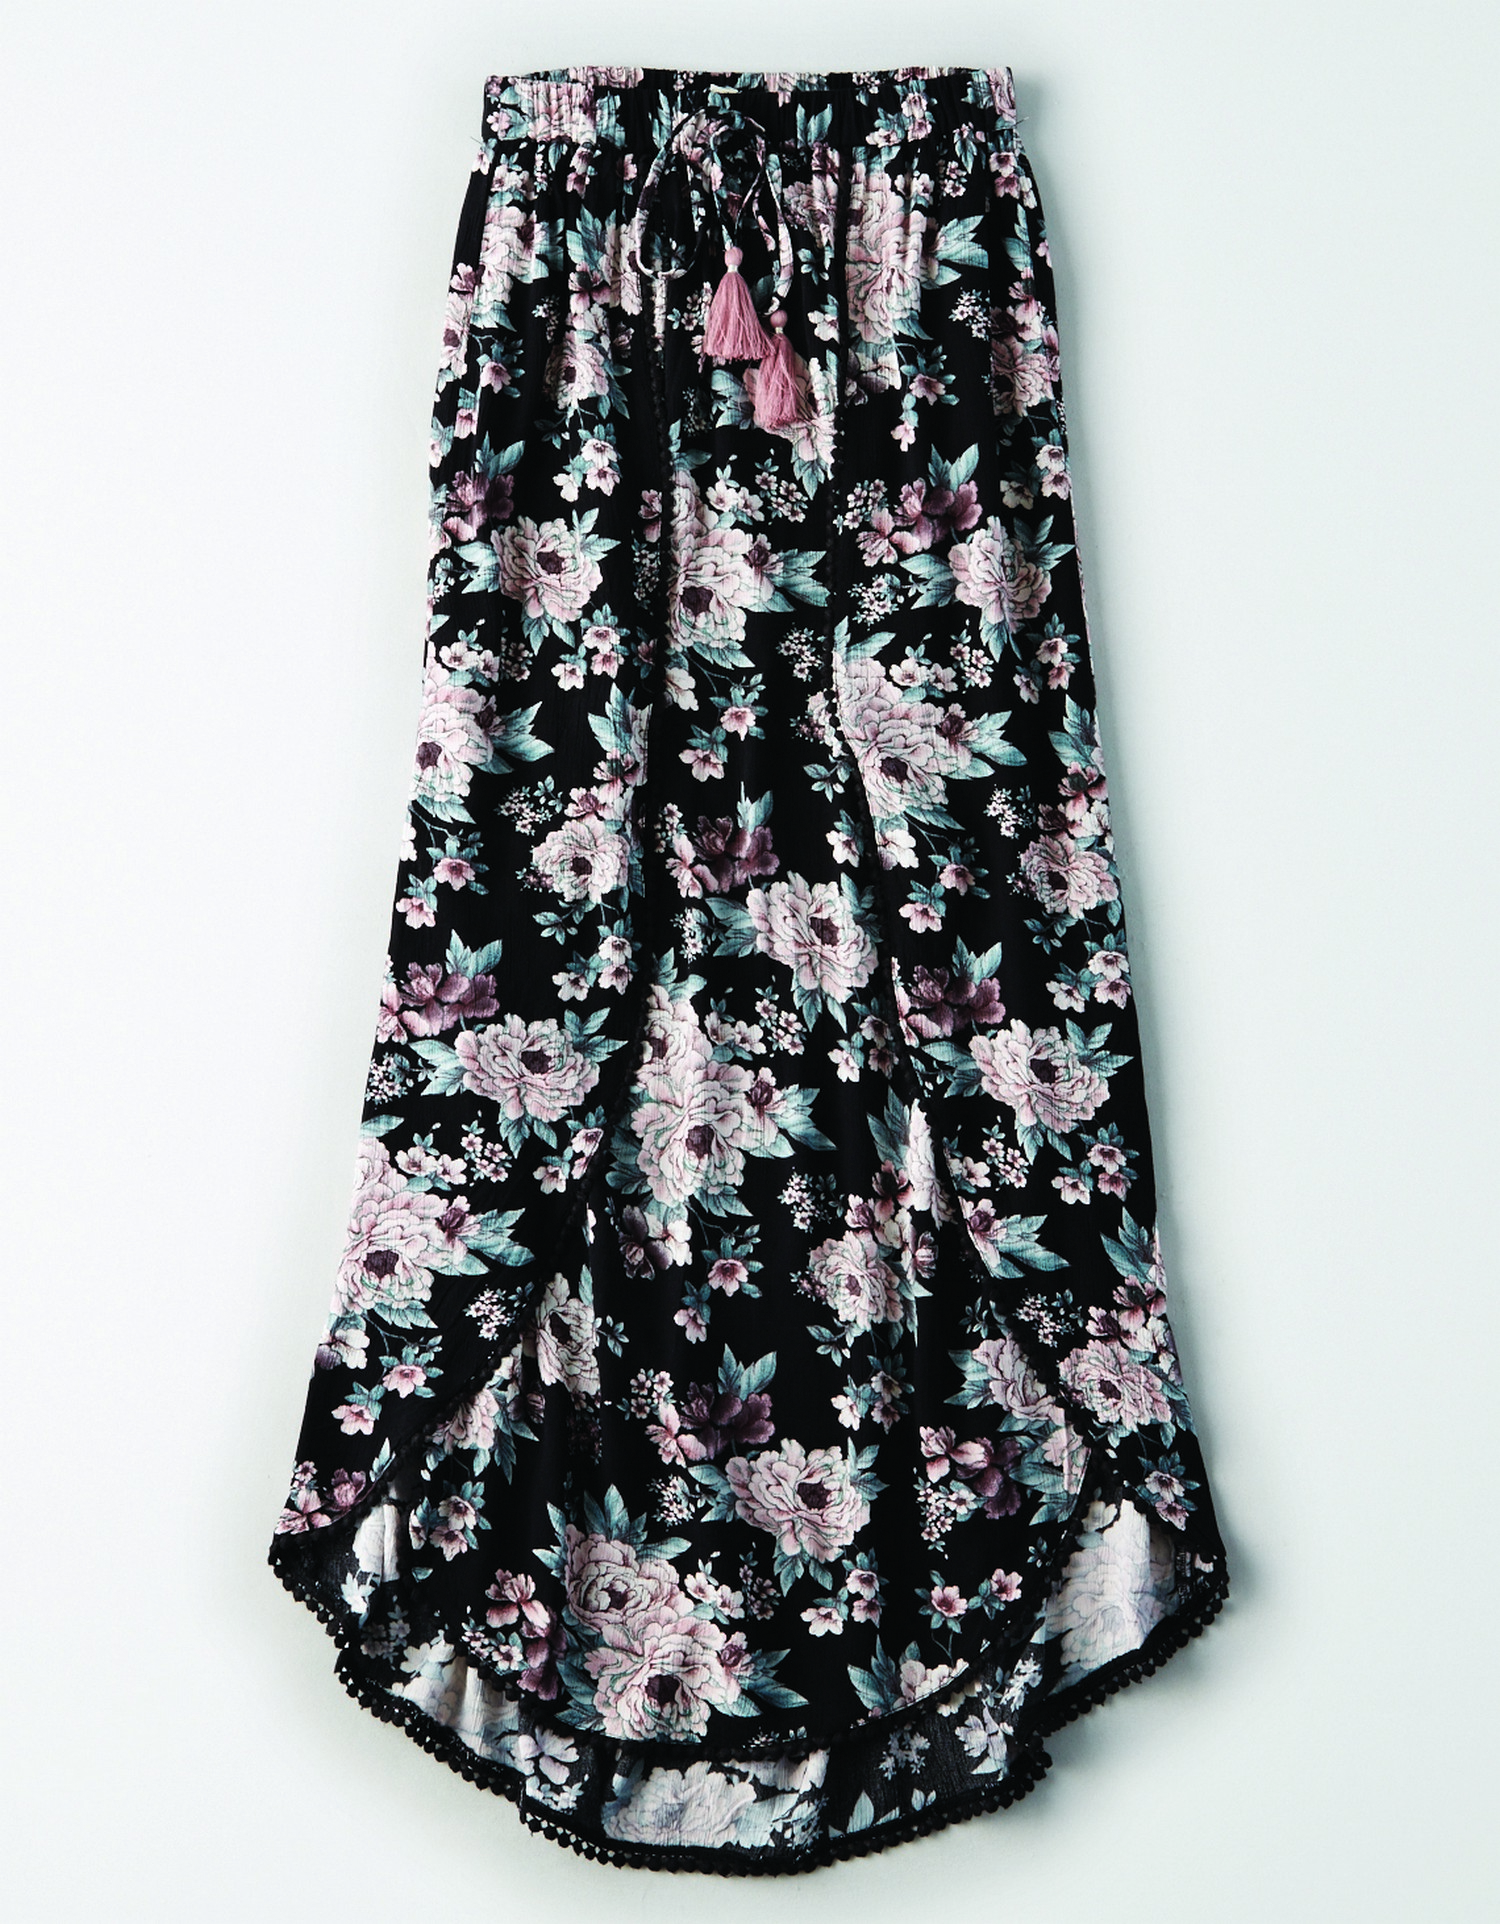 AE - W - Apparel - 2192 POM DETAIL MAXI W TIE - ana floral Black w/Faded teal leaves and mauve flower printed allover - fabric beaded trim - Tie Waist w/Mauve Tassles JP *Tracked